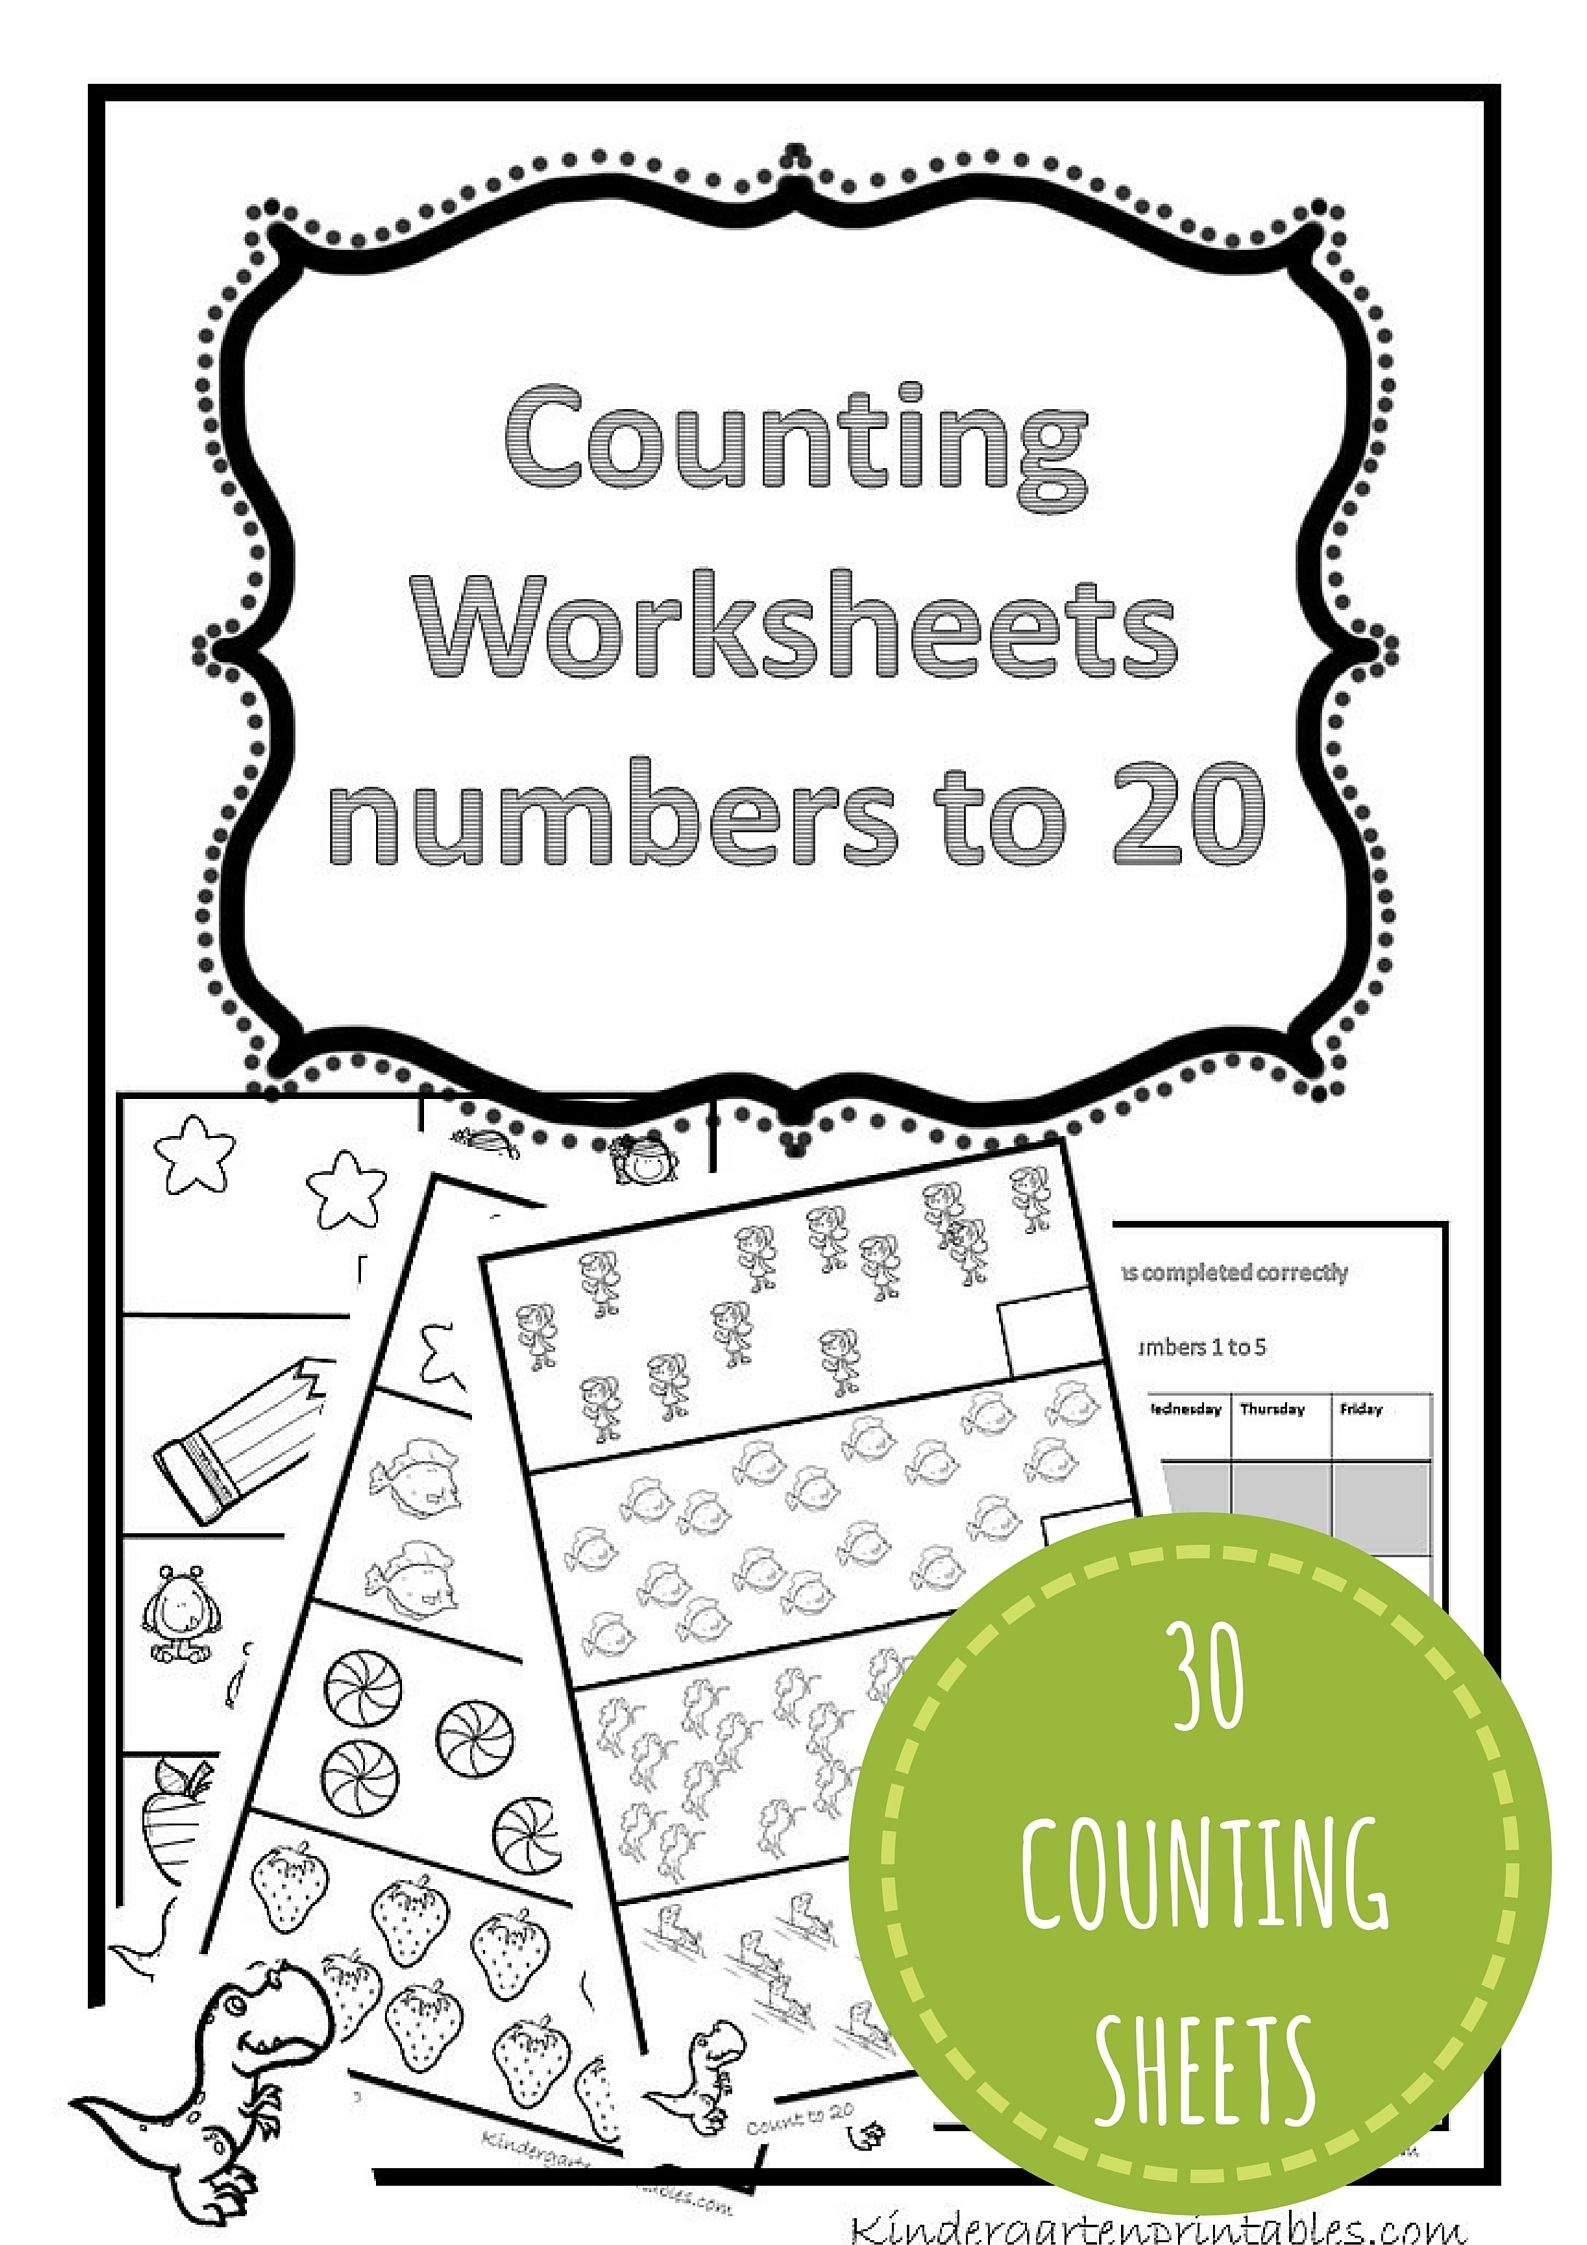 Free Printable Counting Worksheets 1 20